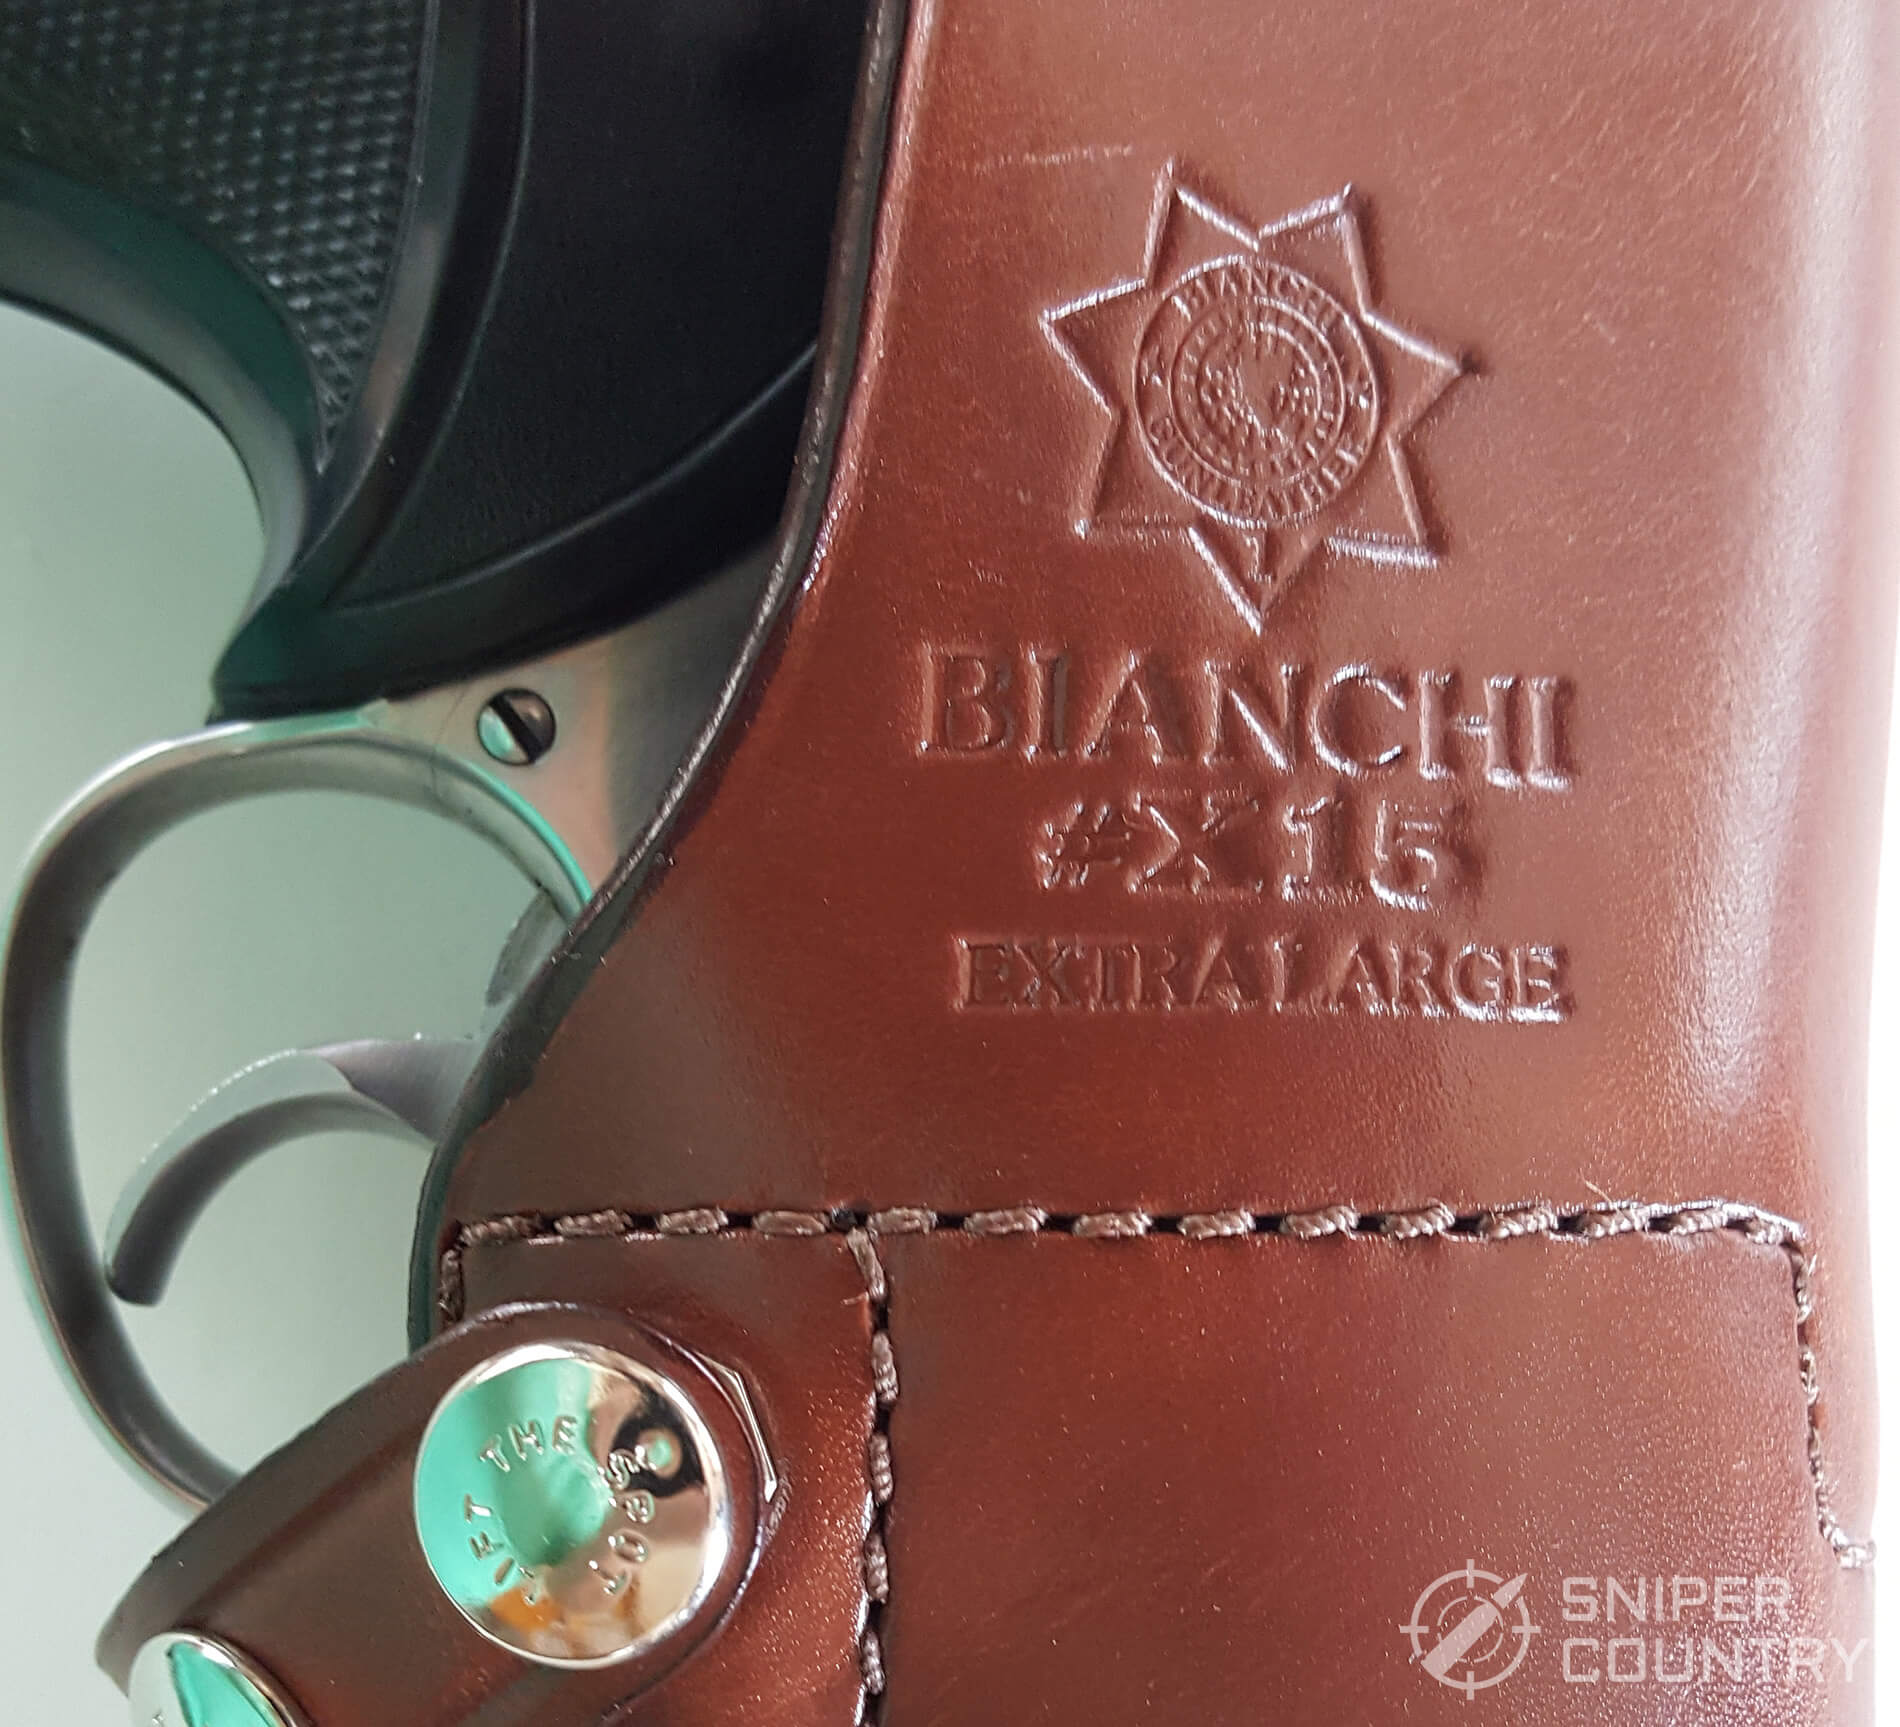 Bianchi X-15 Vertical Shoulder Holster trademark stamp